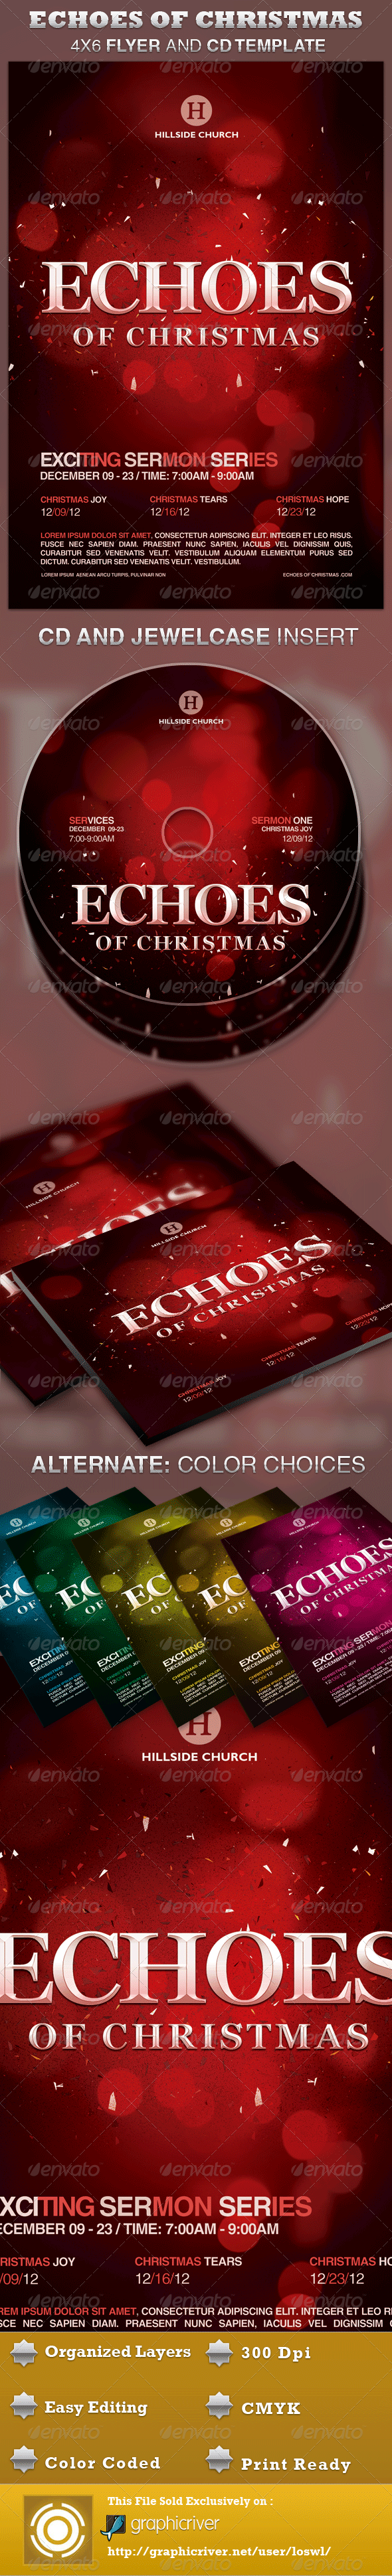 GraphicRiver Echoes of Christmas Church Flyer and CD Template 3337183